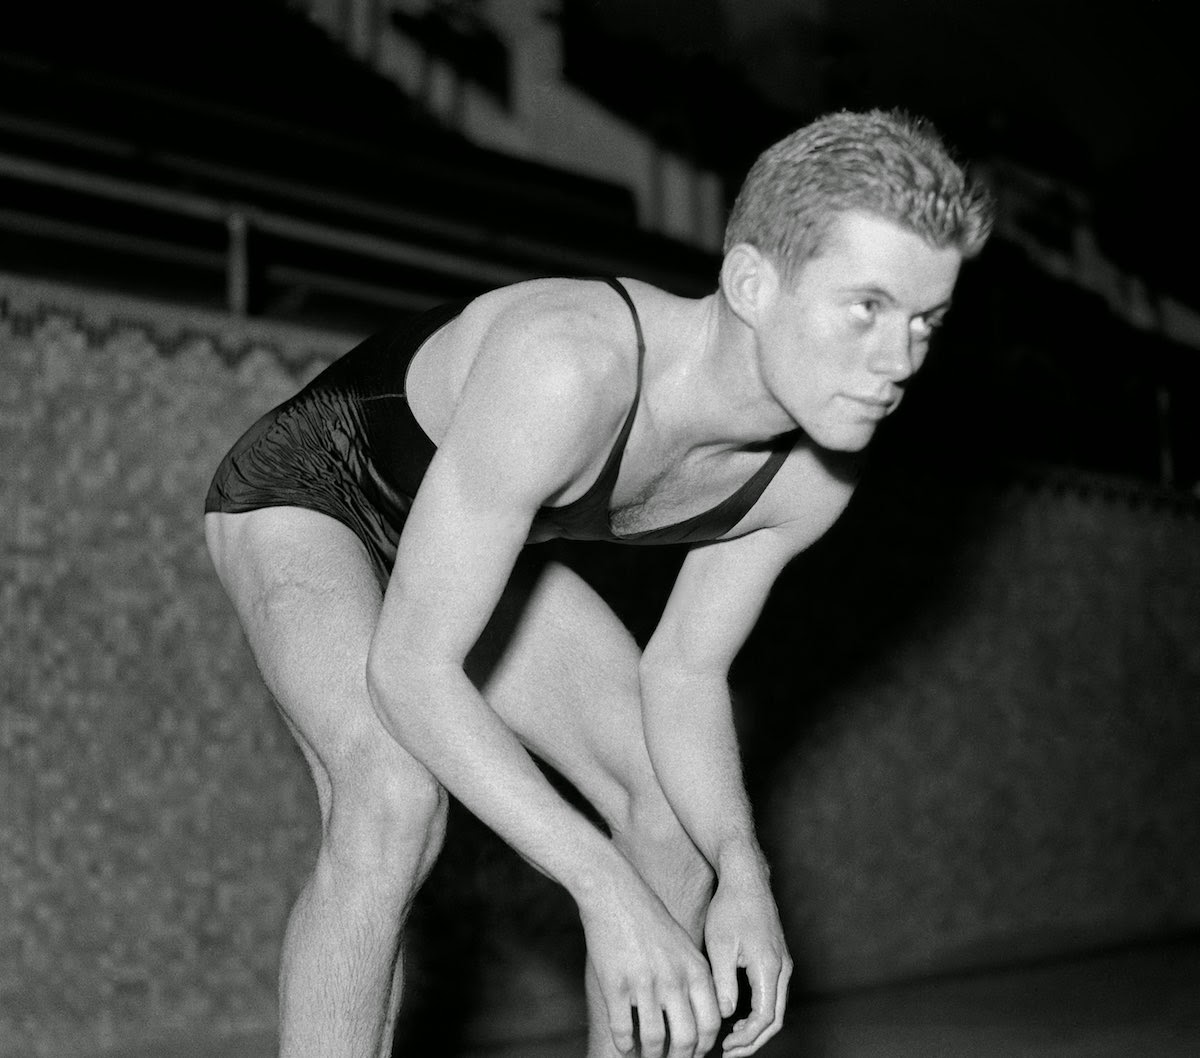 Vintage everyday interesting photos of young john f kennedy swims